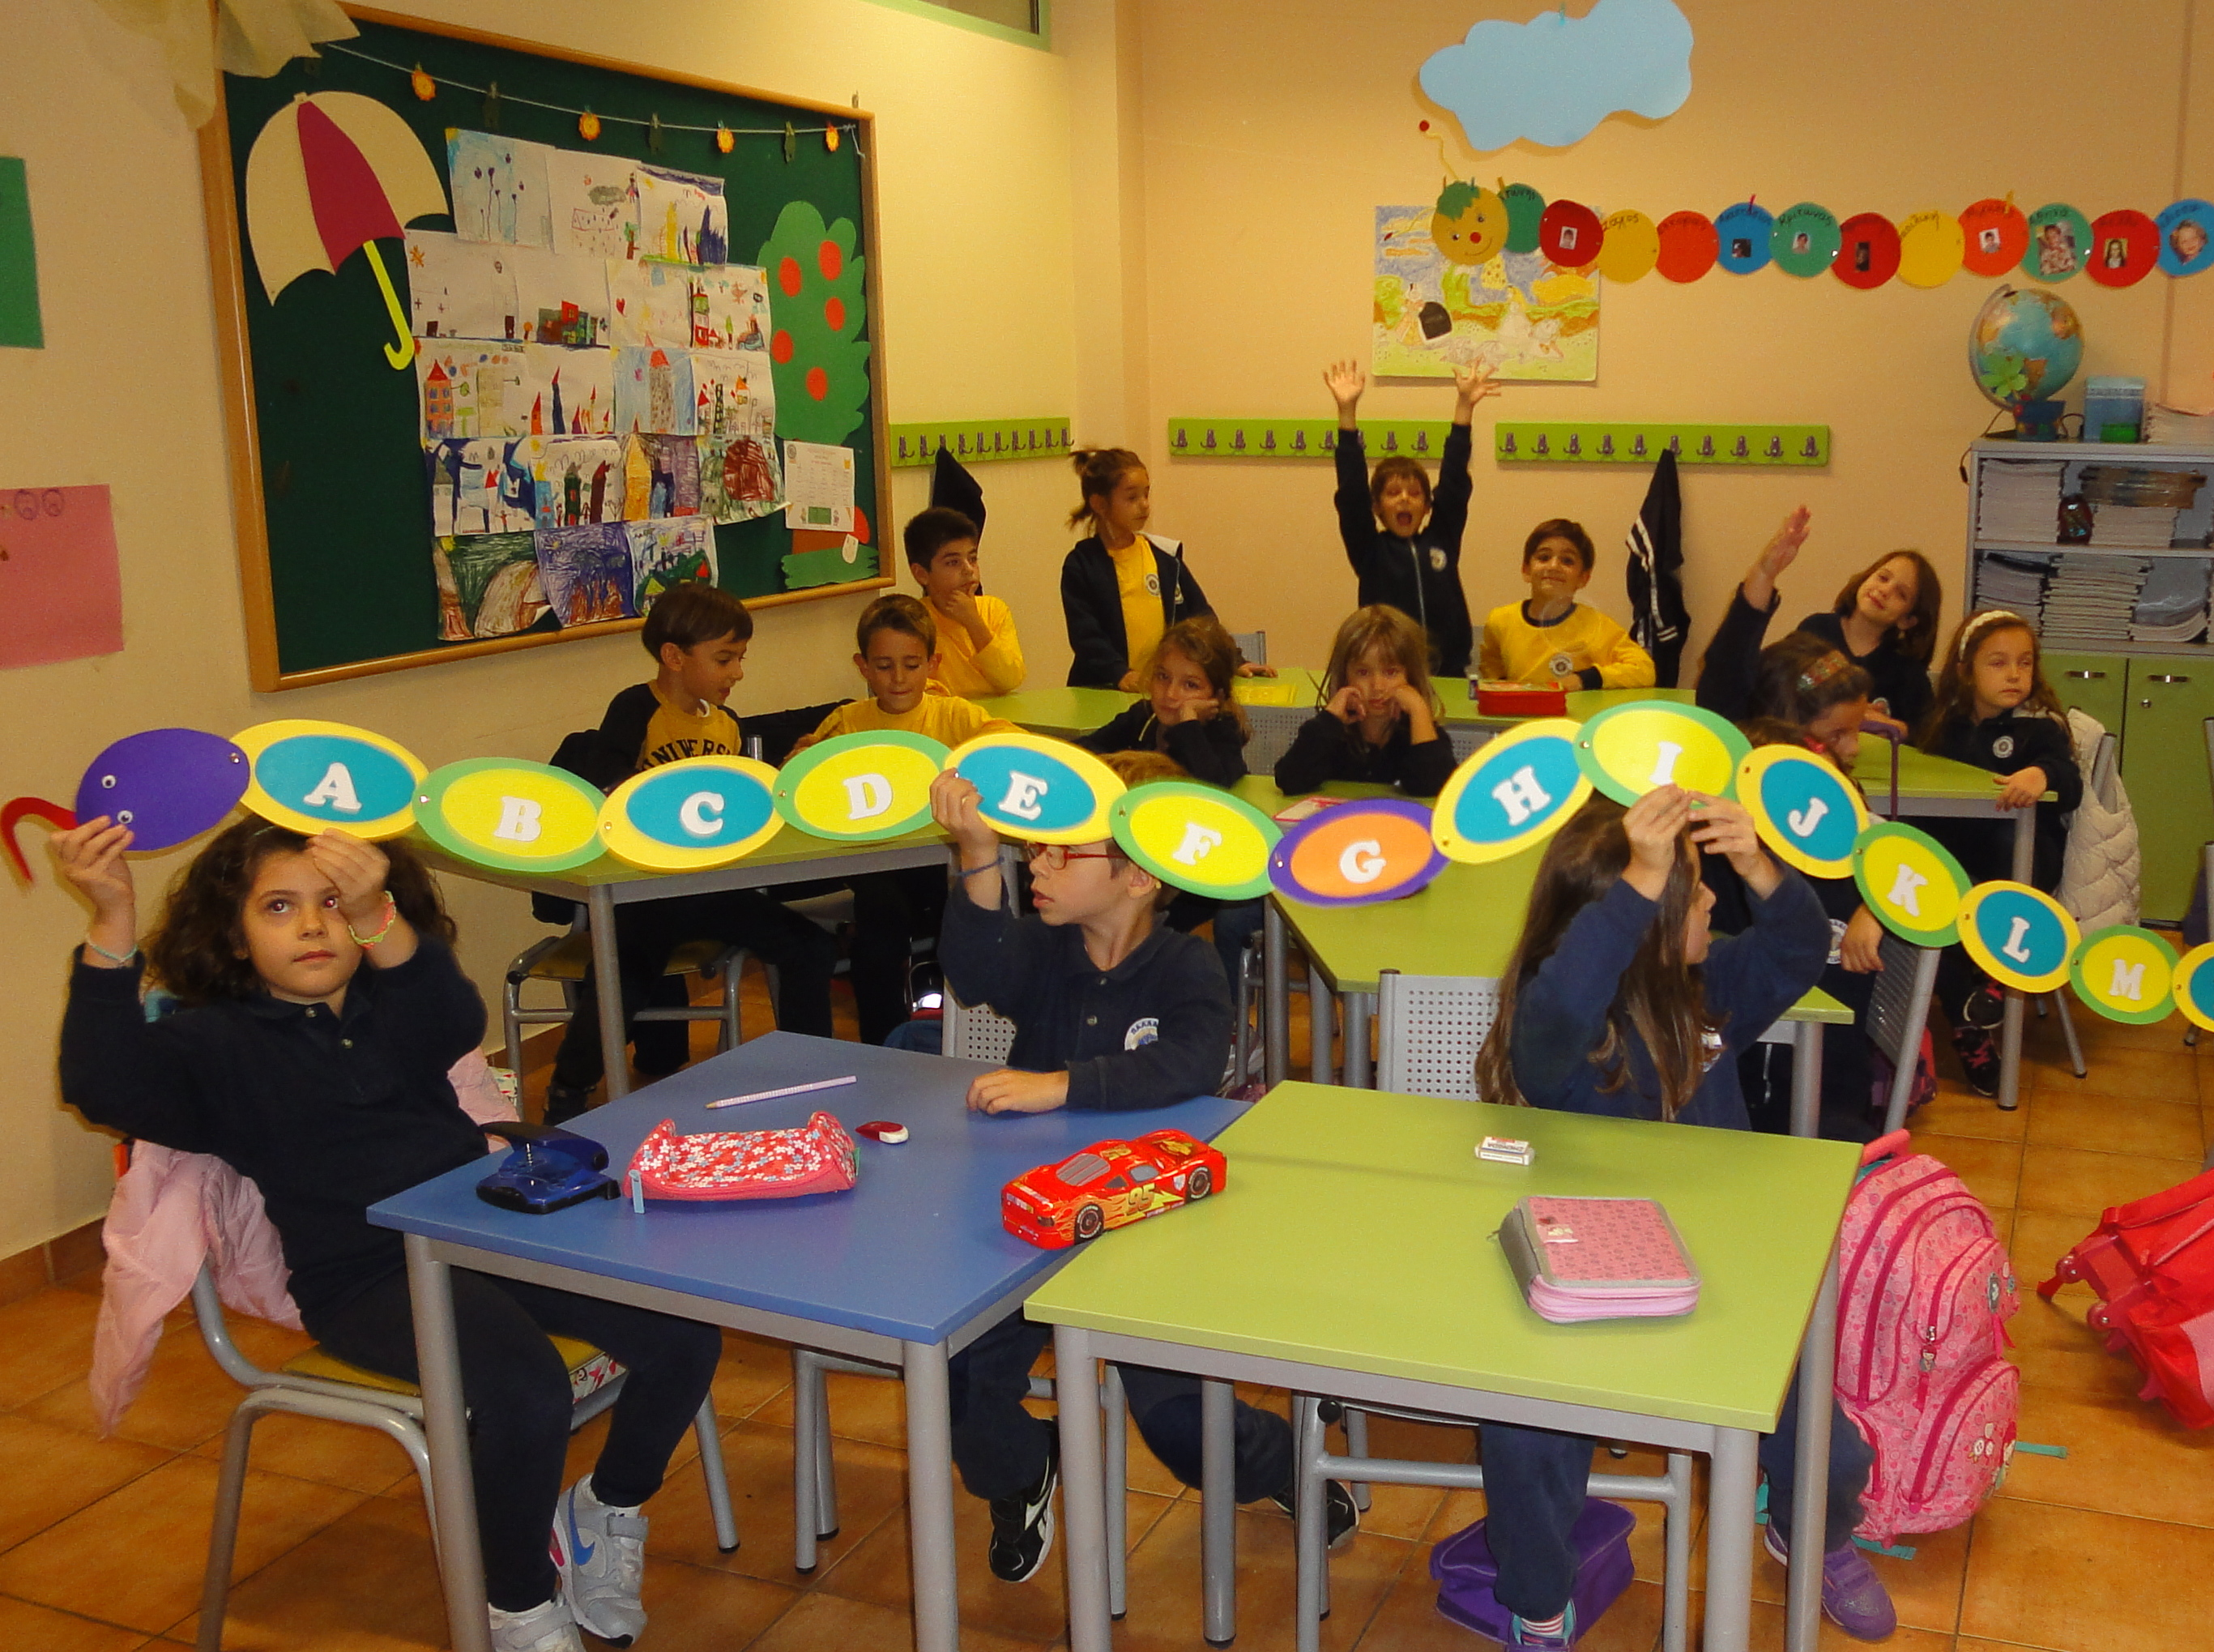 OH NO! A SNAKE IN THE CLASSROOM!